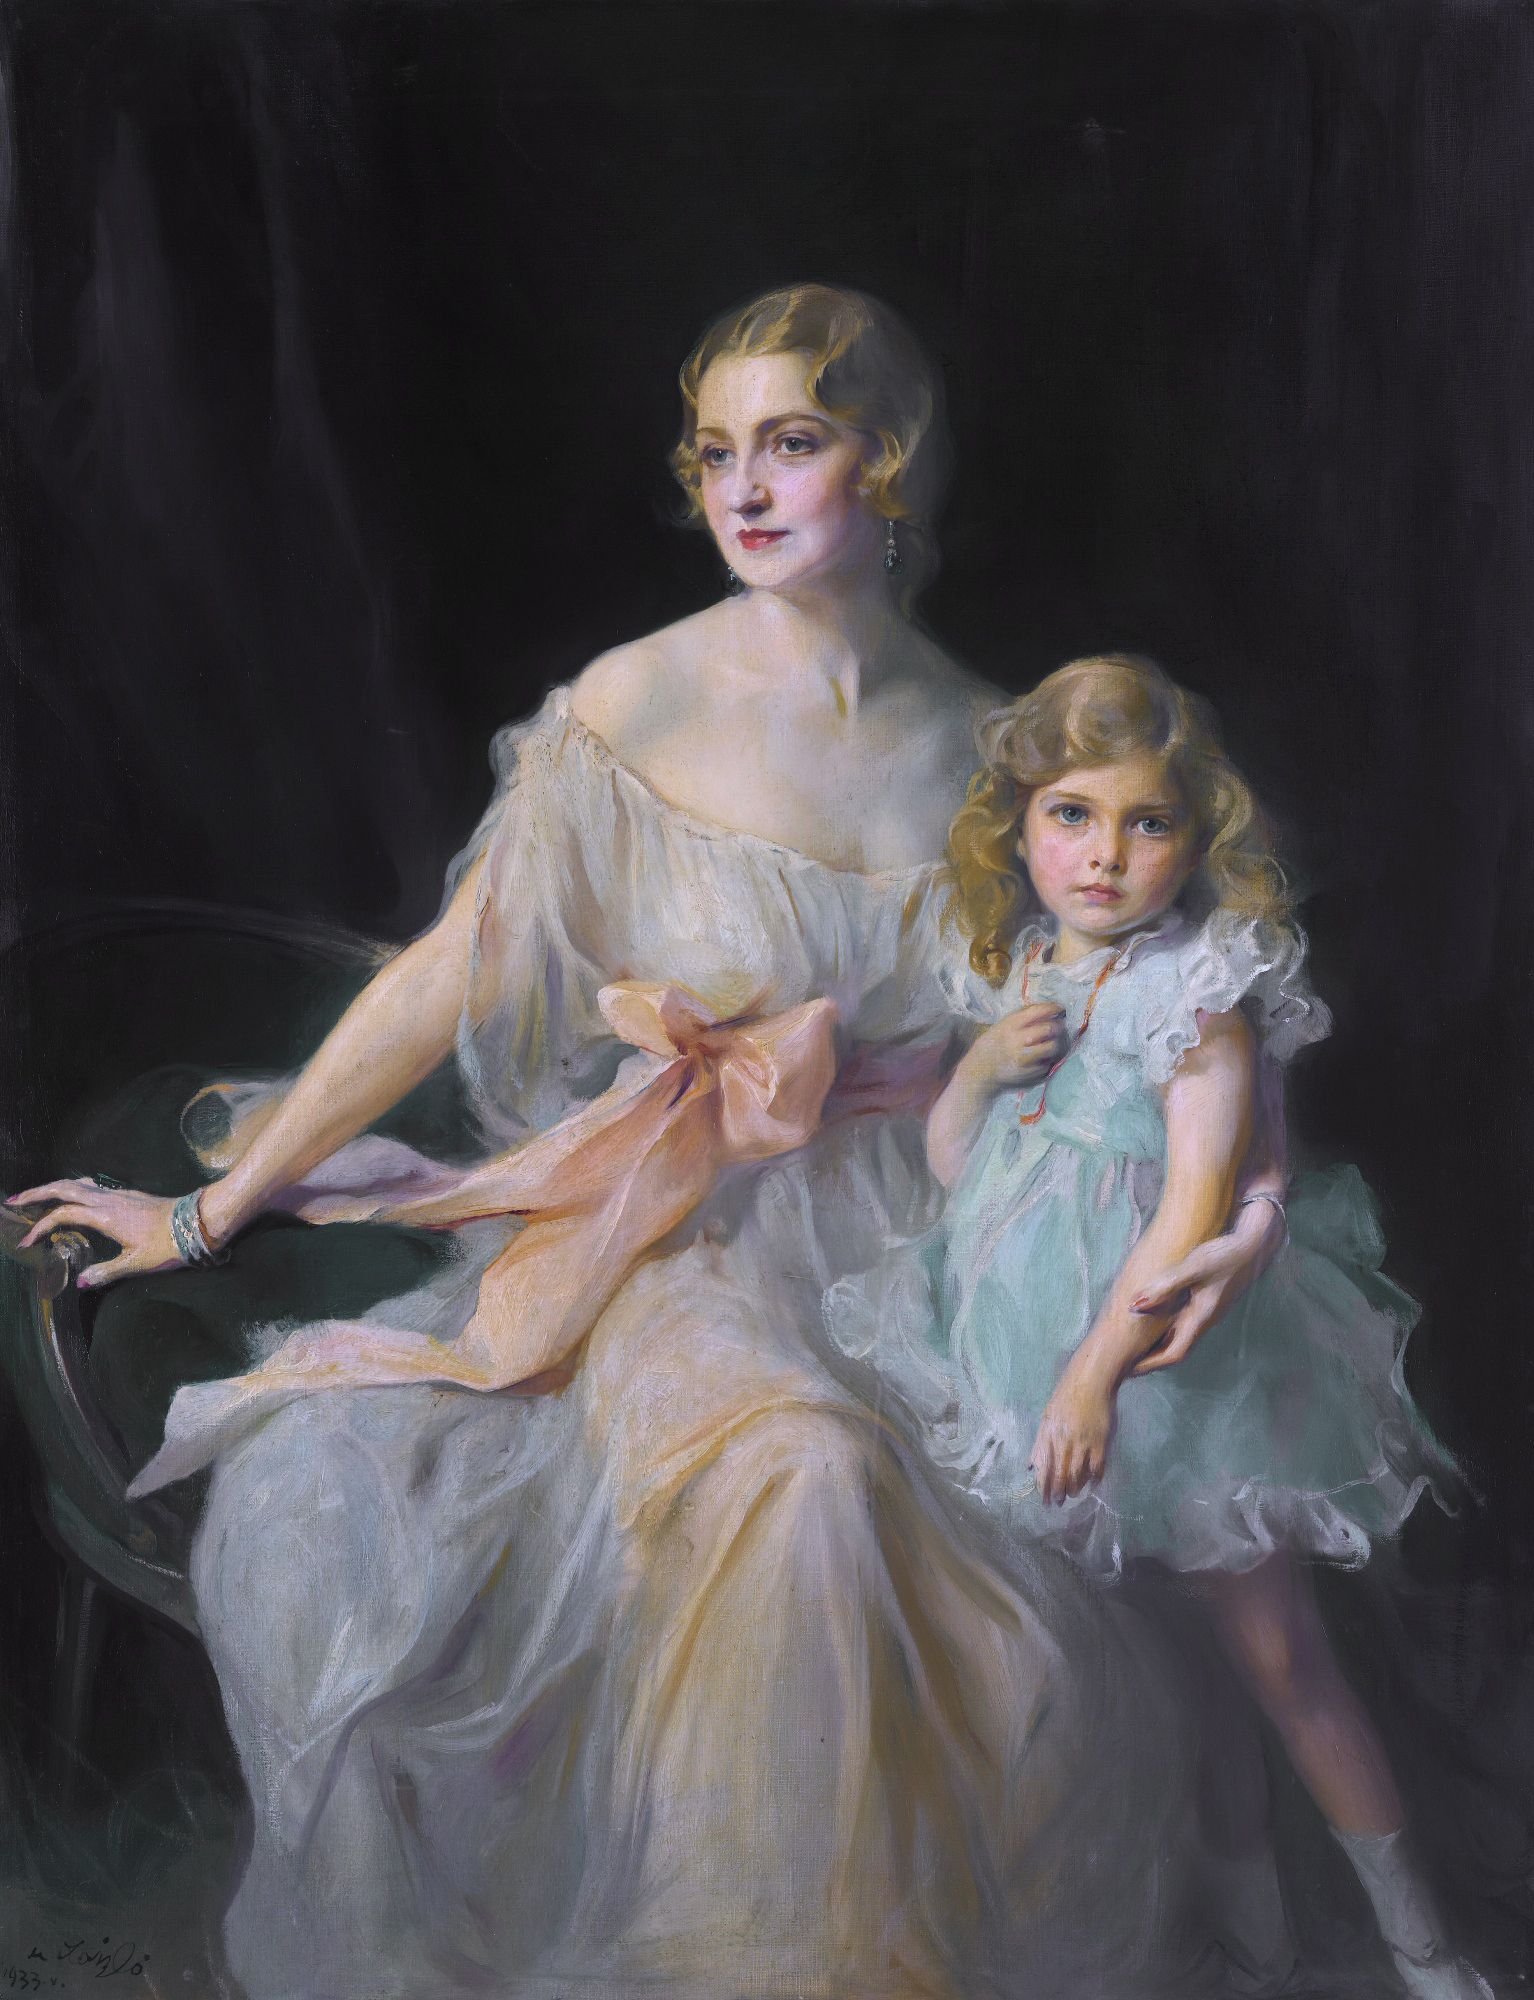 https://upload.wikimedia.org/wikipedia/commons/9/95/Mrs_Claude_Leigh_and_Miss_Virginia_Leigh%2C_by_Philip_Alexius_de_L%C3%A1szl%C3%B3.jpg